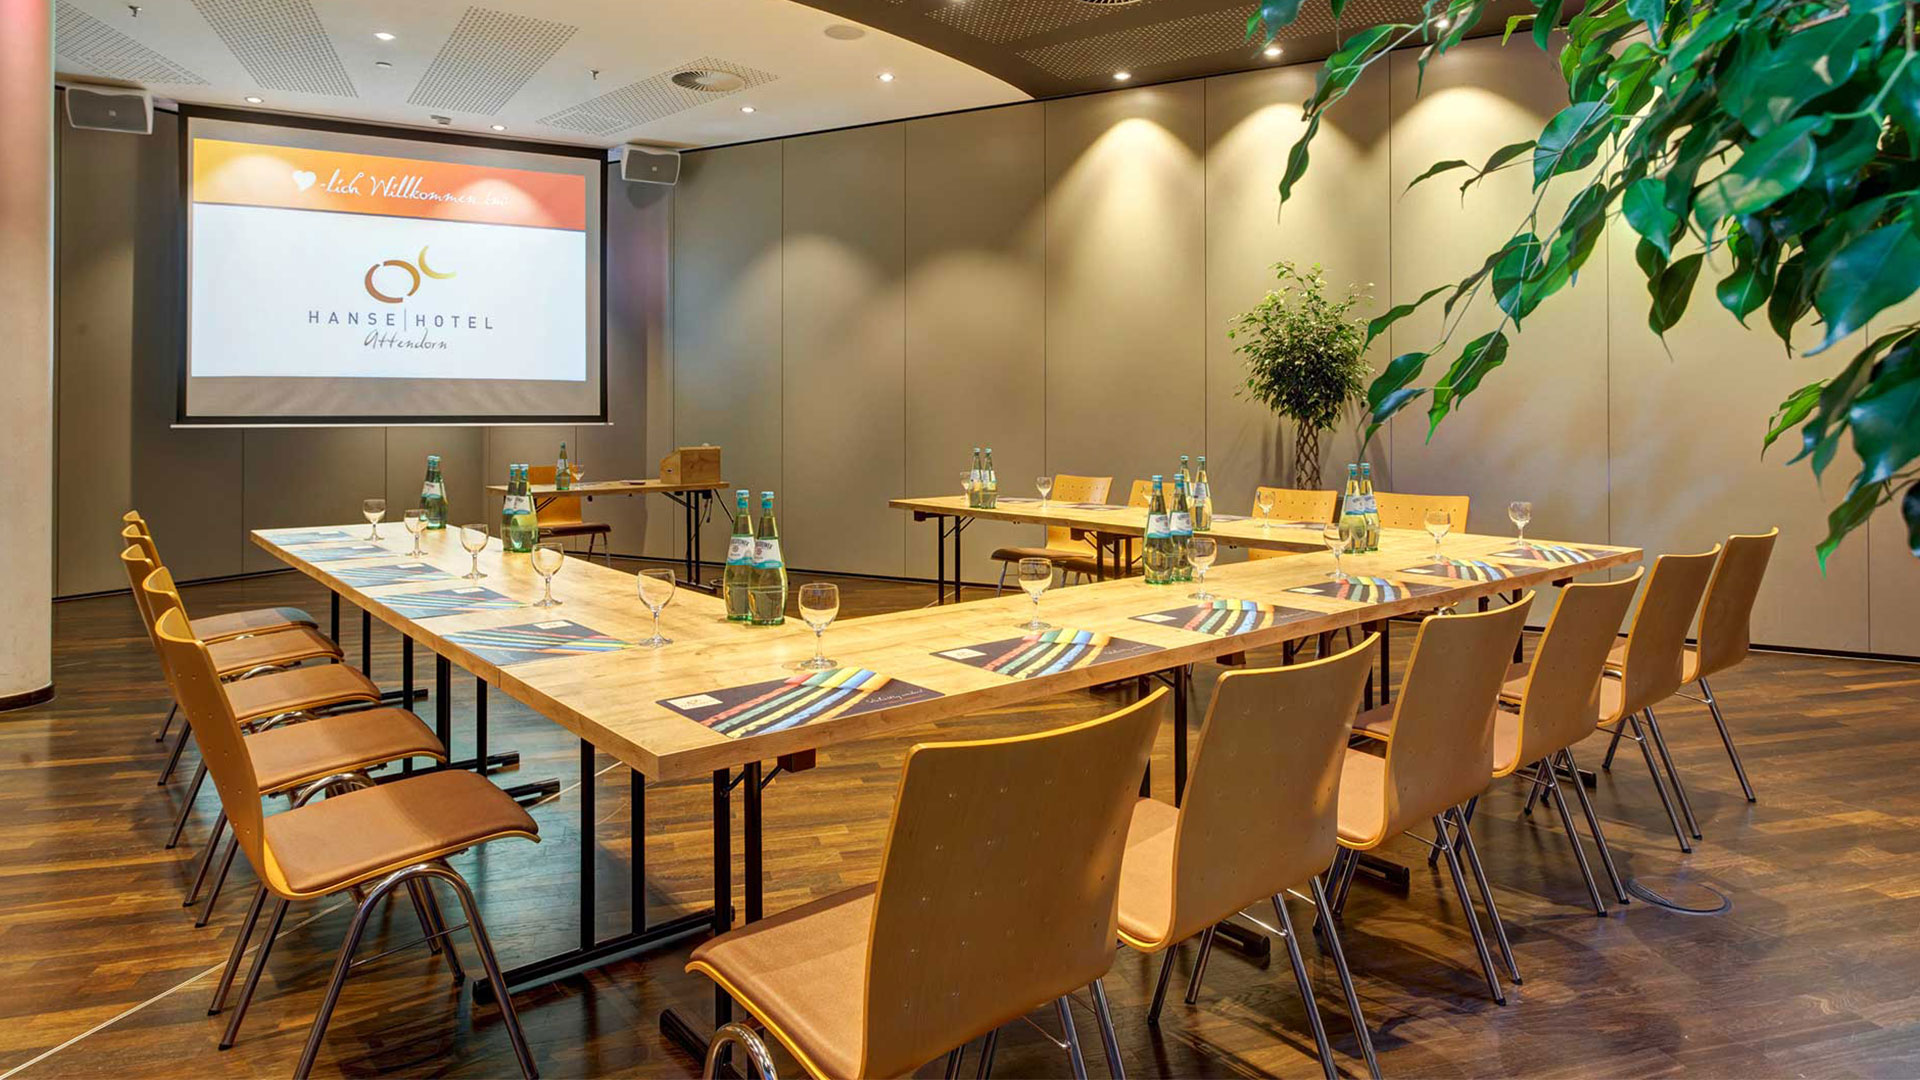 Photo of the conference room - 01 - Hanse Hotel Attendorn